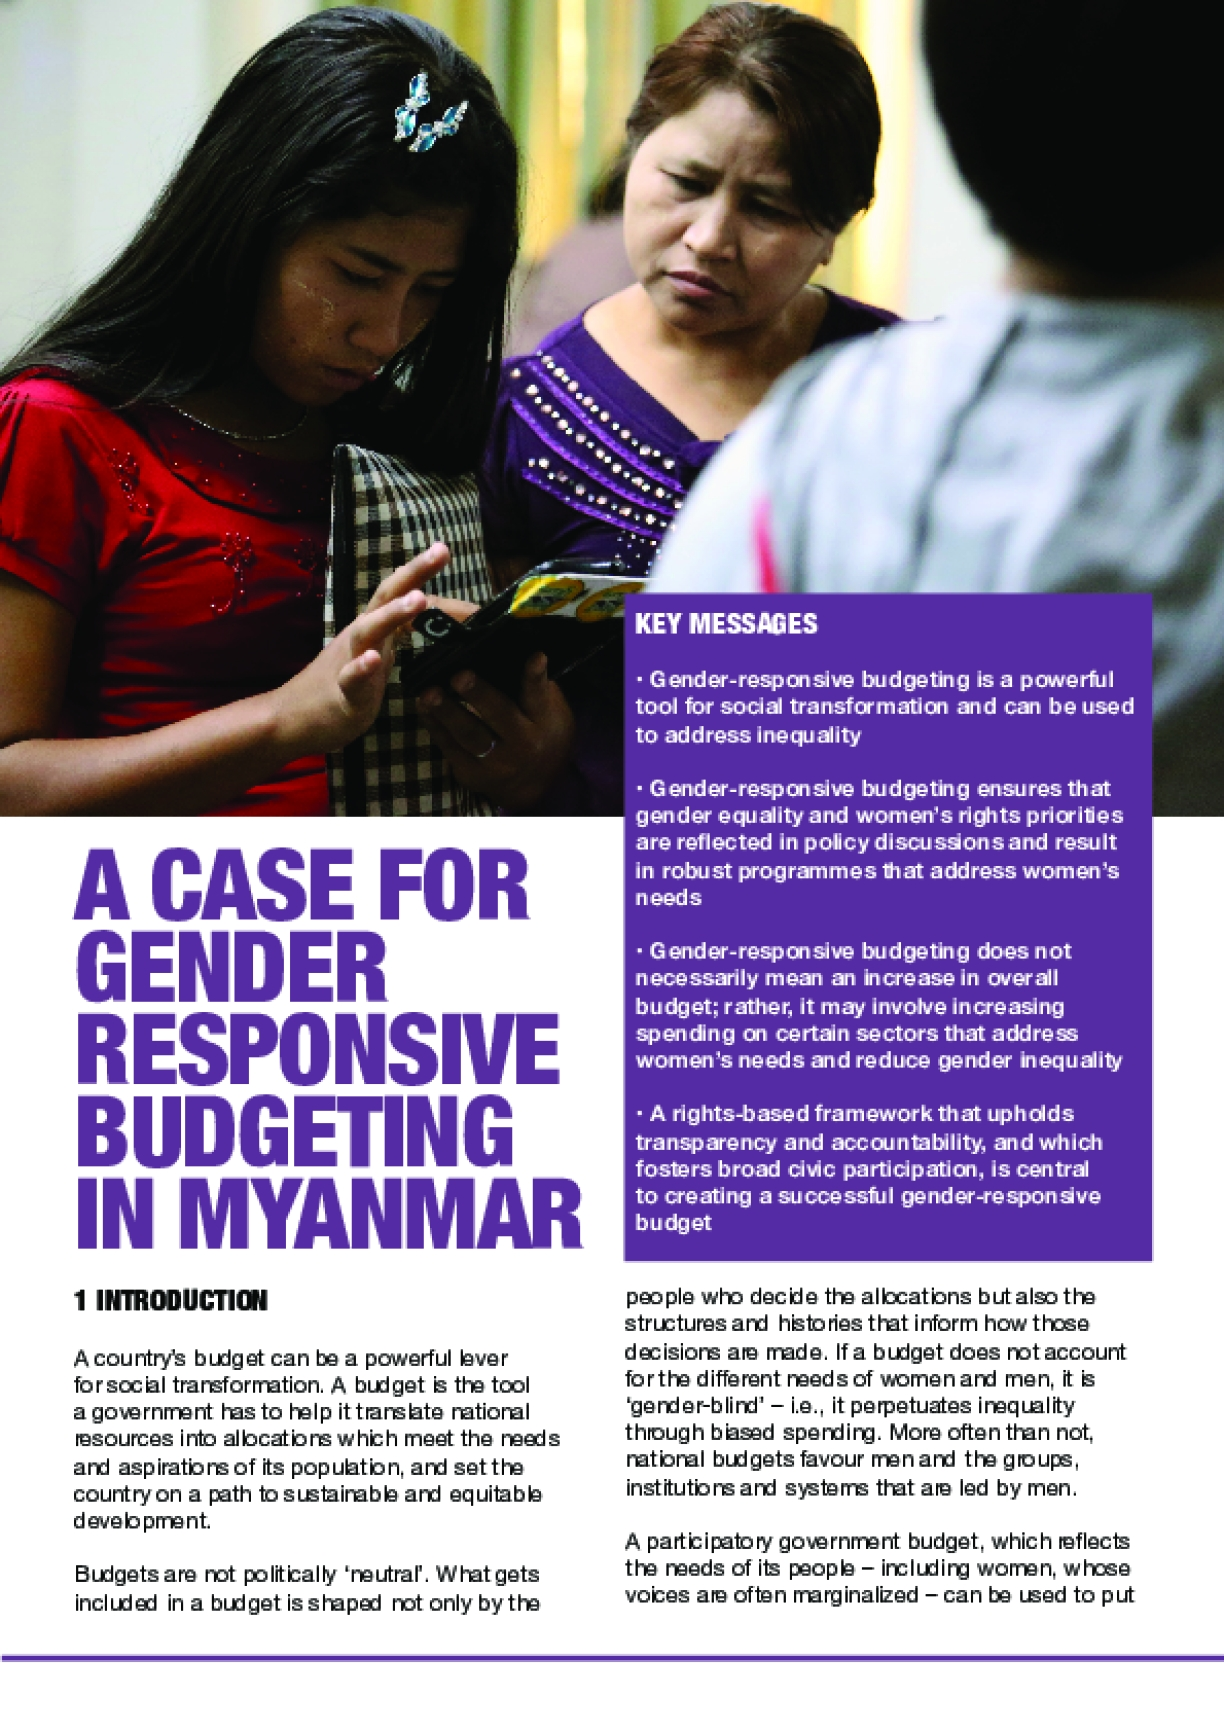 A Case for Gender-Responsive Budgeting in Myanmar